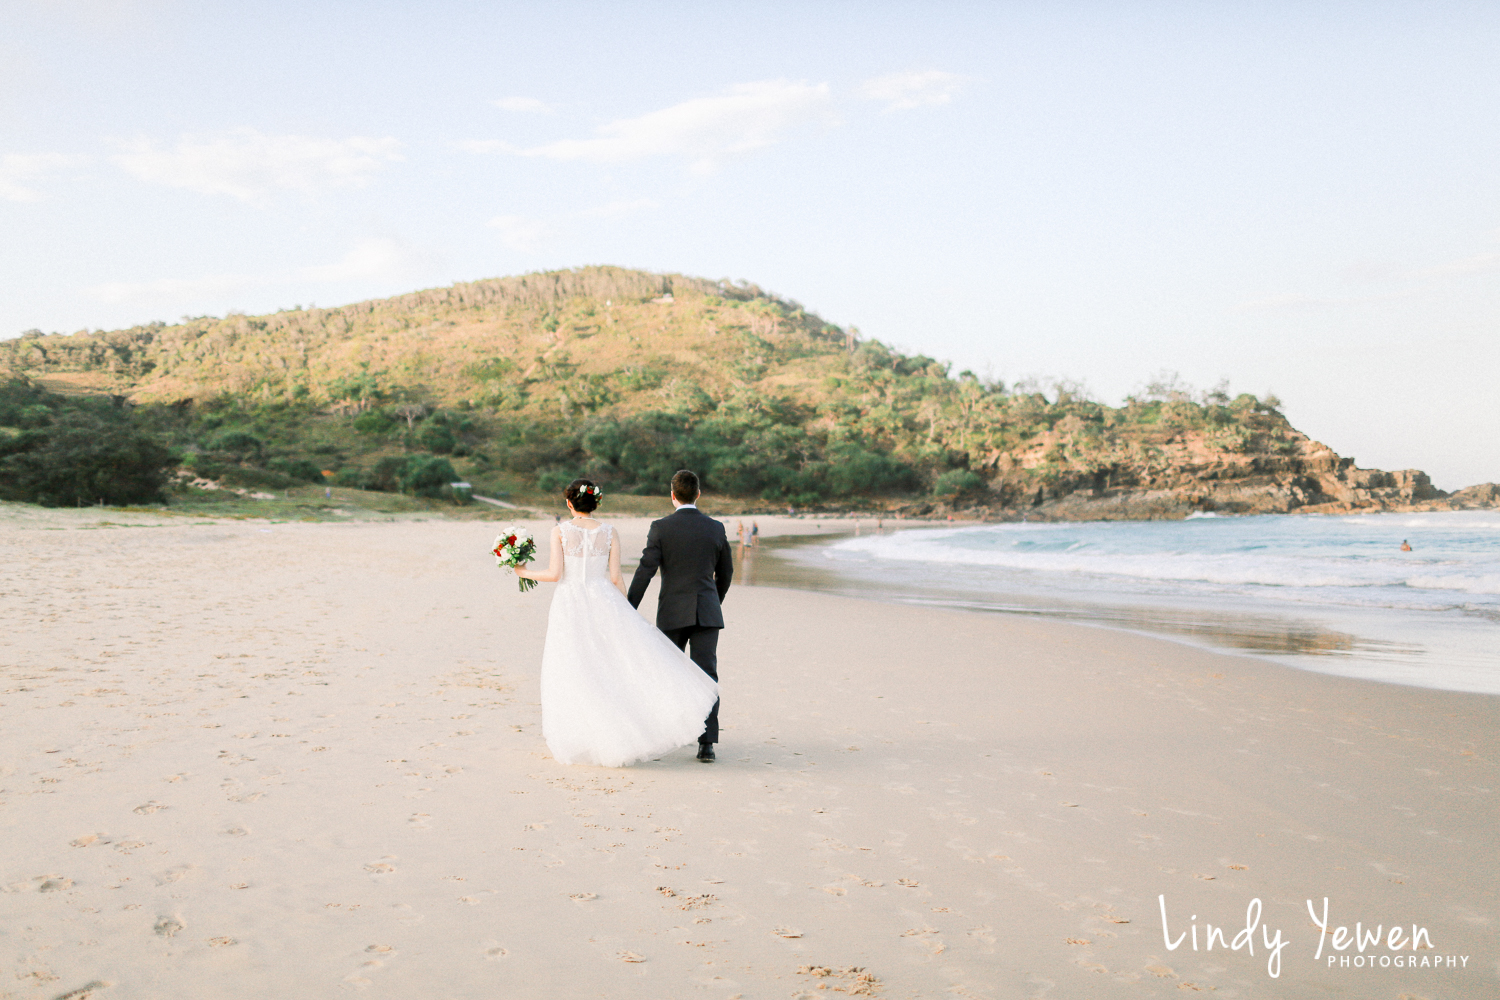 Sunshine-Beach-Weddings-Dimitrije-Maria 190.jpg